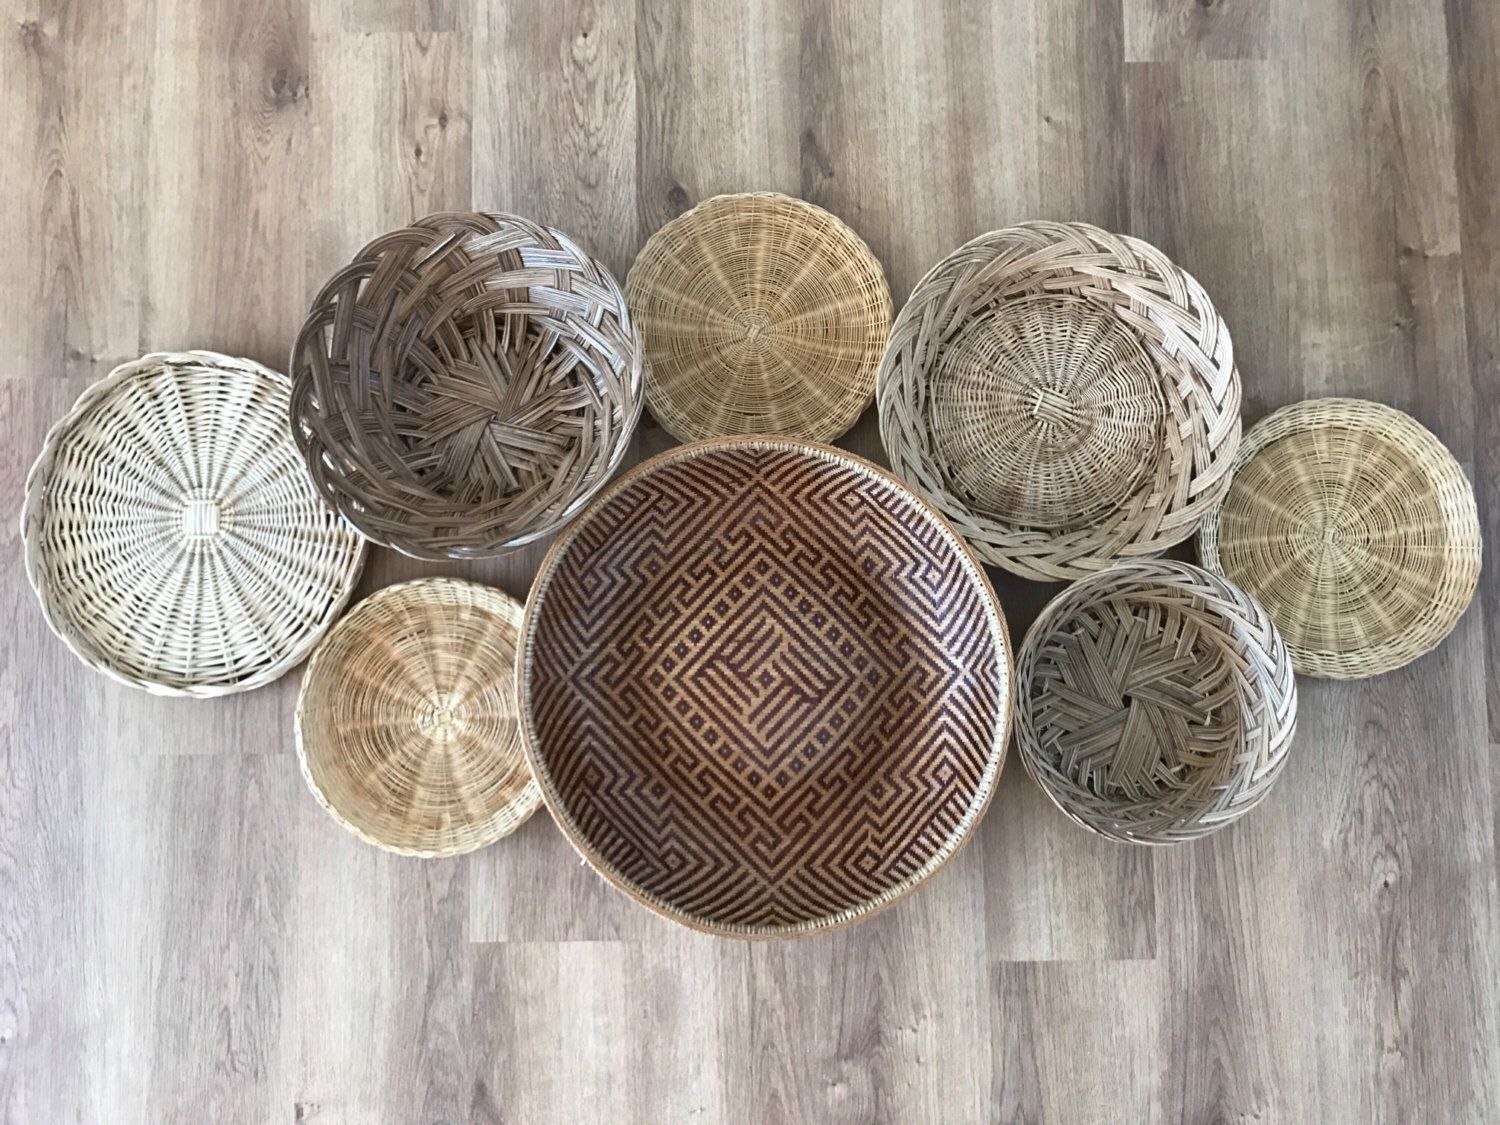 Boho Vintage Set Of Wicker Rattan Woven Wall Hanging Baskets Intended For Newest Woven Basket Wall Art (View 14 of 20)